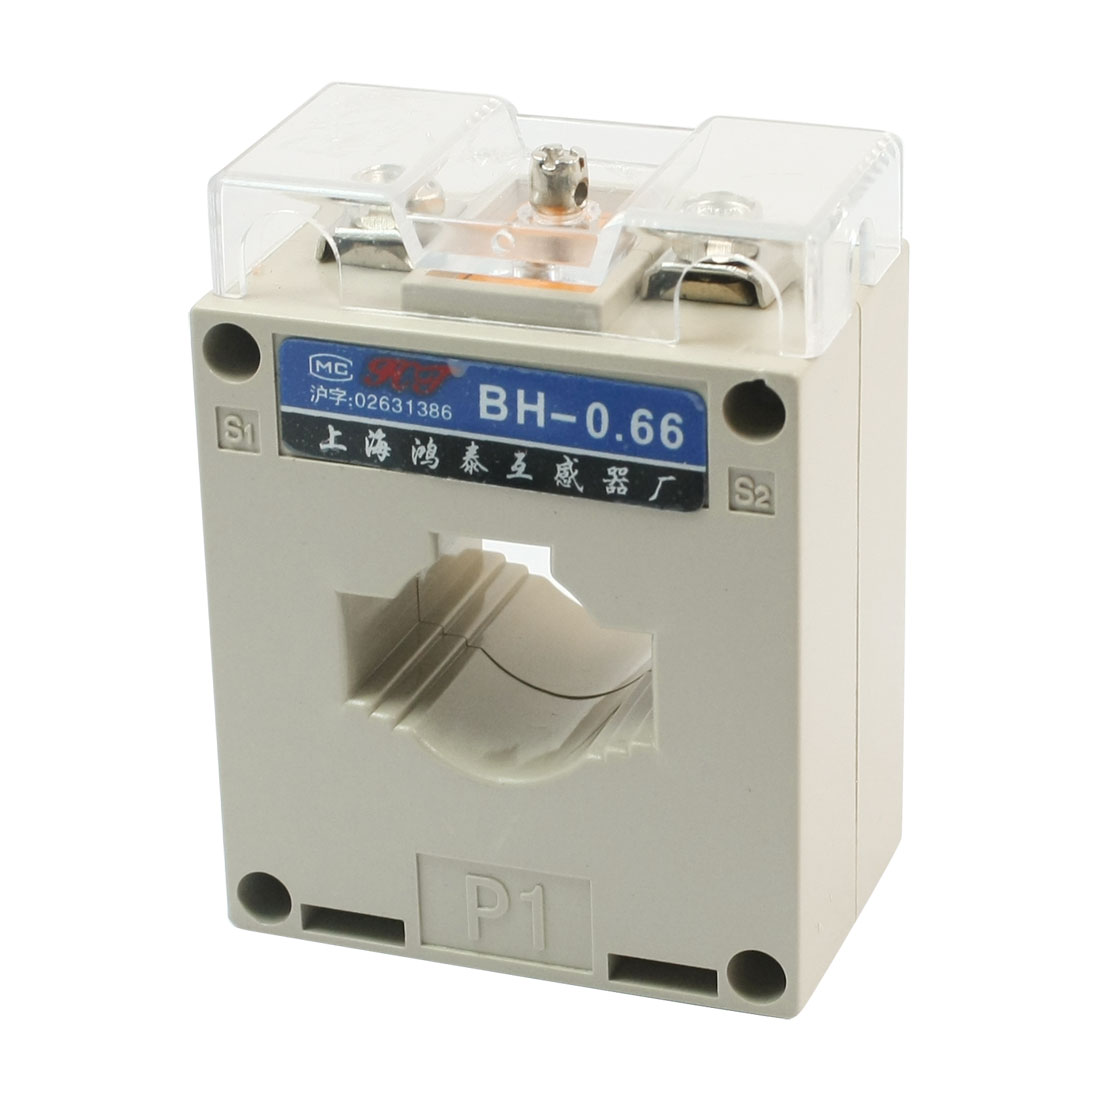 BH-0.66 0.5 Class 1T 100/5 Gray Electric Current Transformer 660V